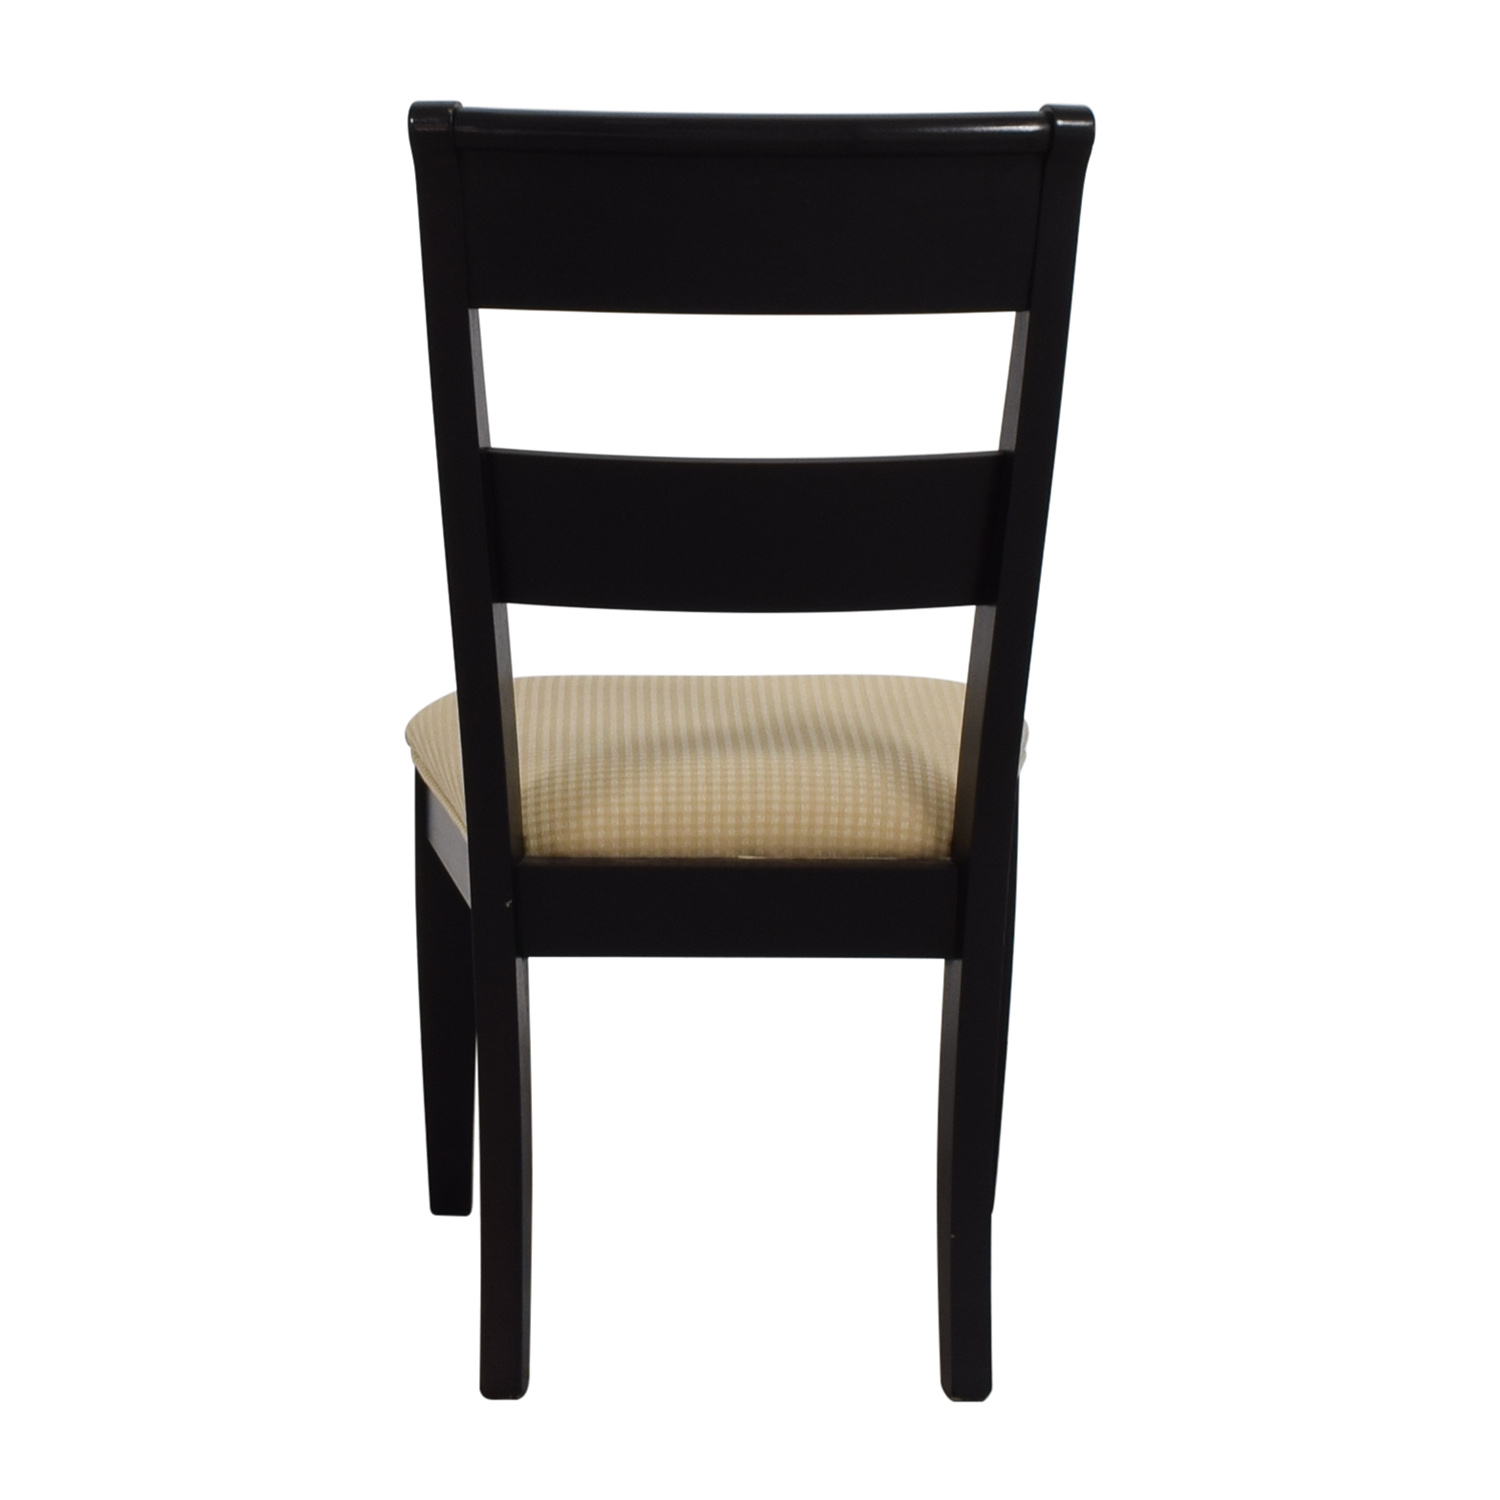 Raymour & Flanigan Raymour & Flanigan Black Chair with Beige Check Upholstery